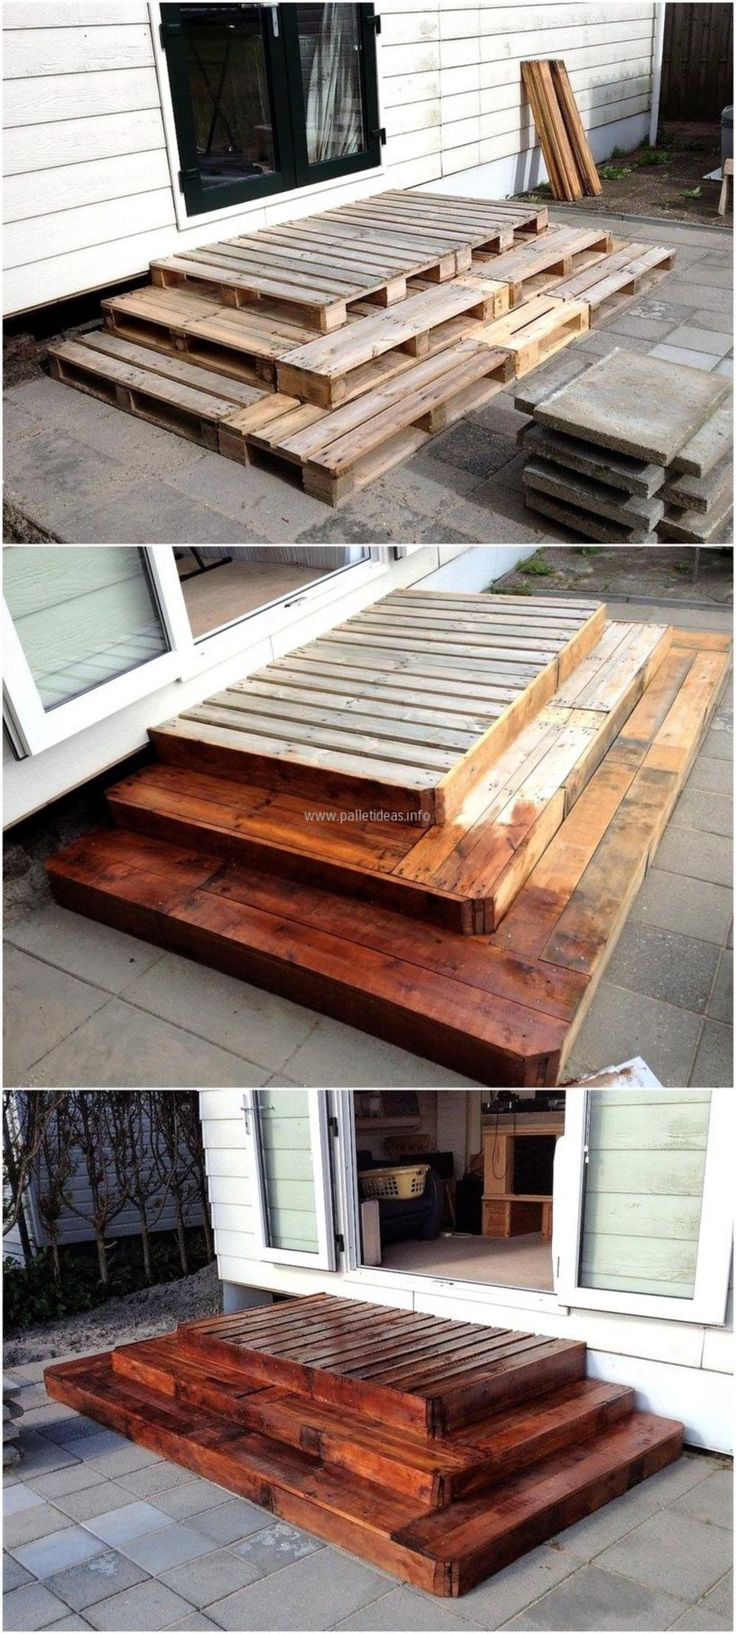 awesome 30 DIY Patio Ideas on A Budget https://wartaku.net/2017/05/27/30-diy-patio-ideas-budget/